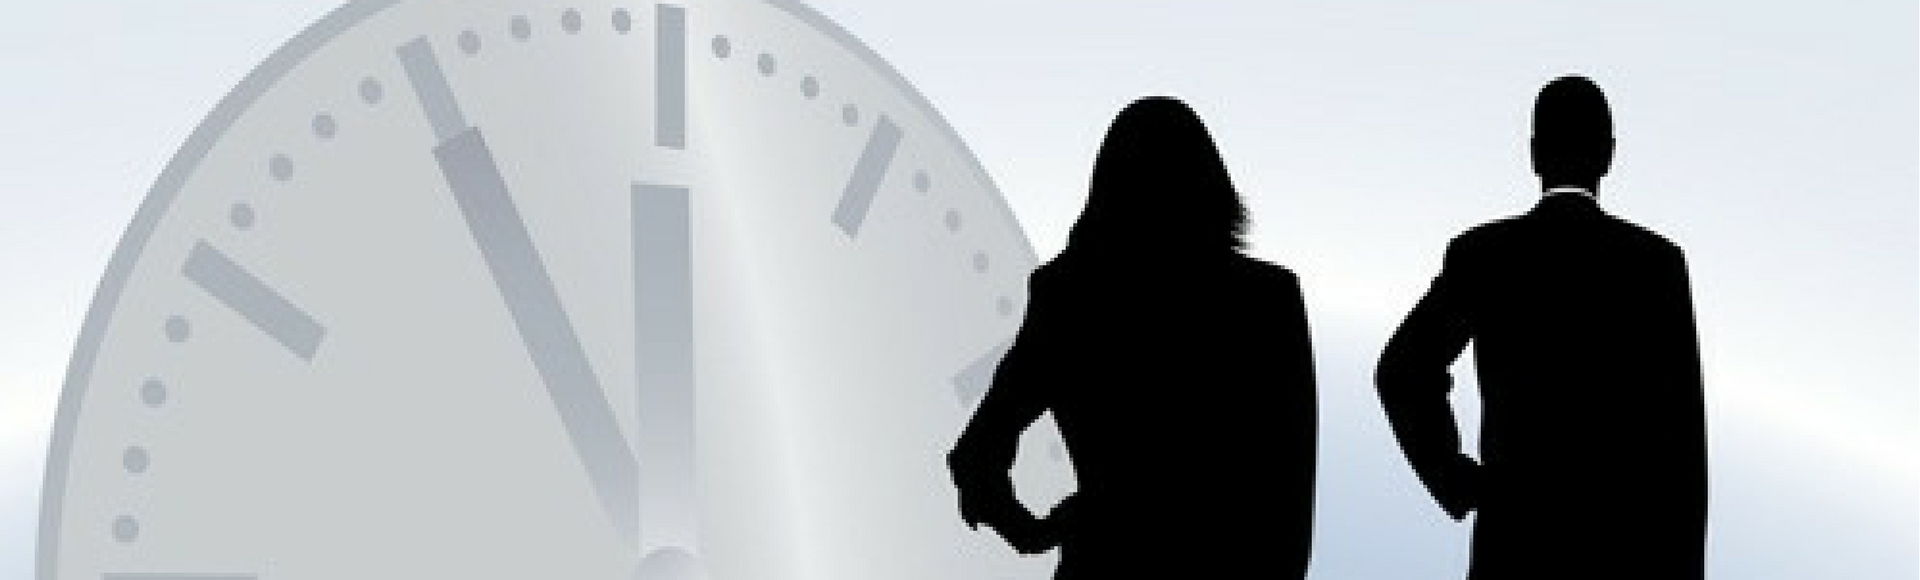 Shadowy figures of businessman businesswoman standing in front of large time clock signifying time worked whether it's part-time or full-time, and the need for staffing solutions.